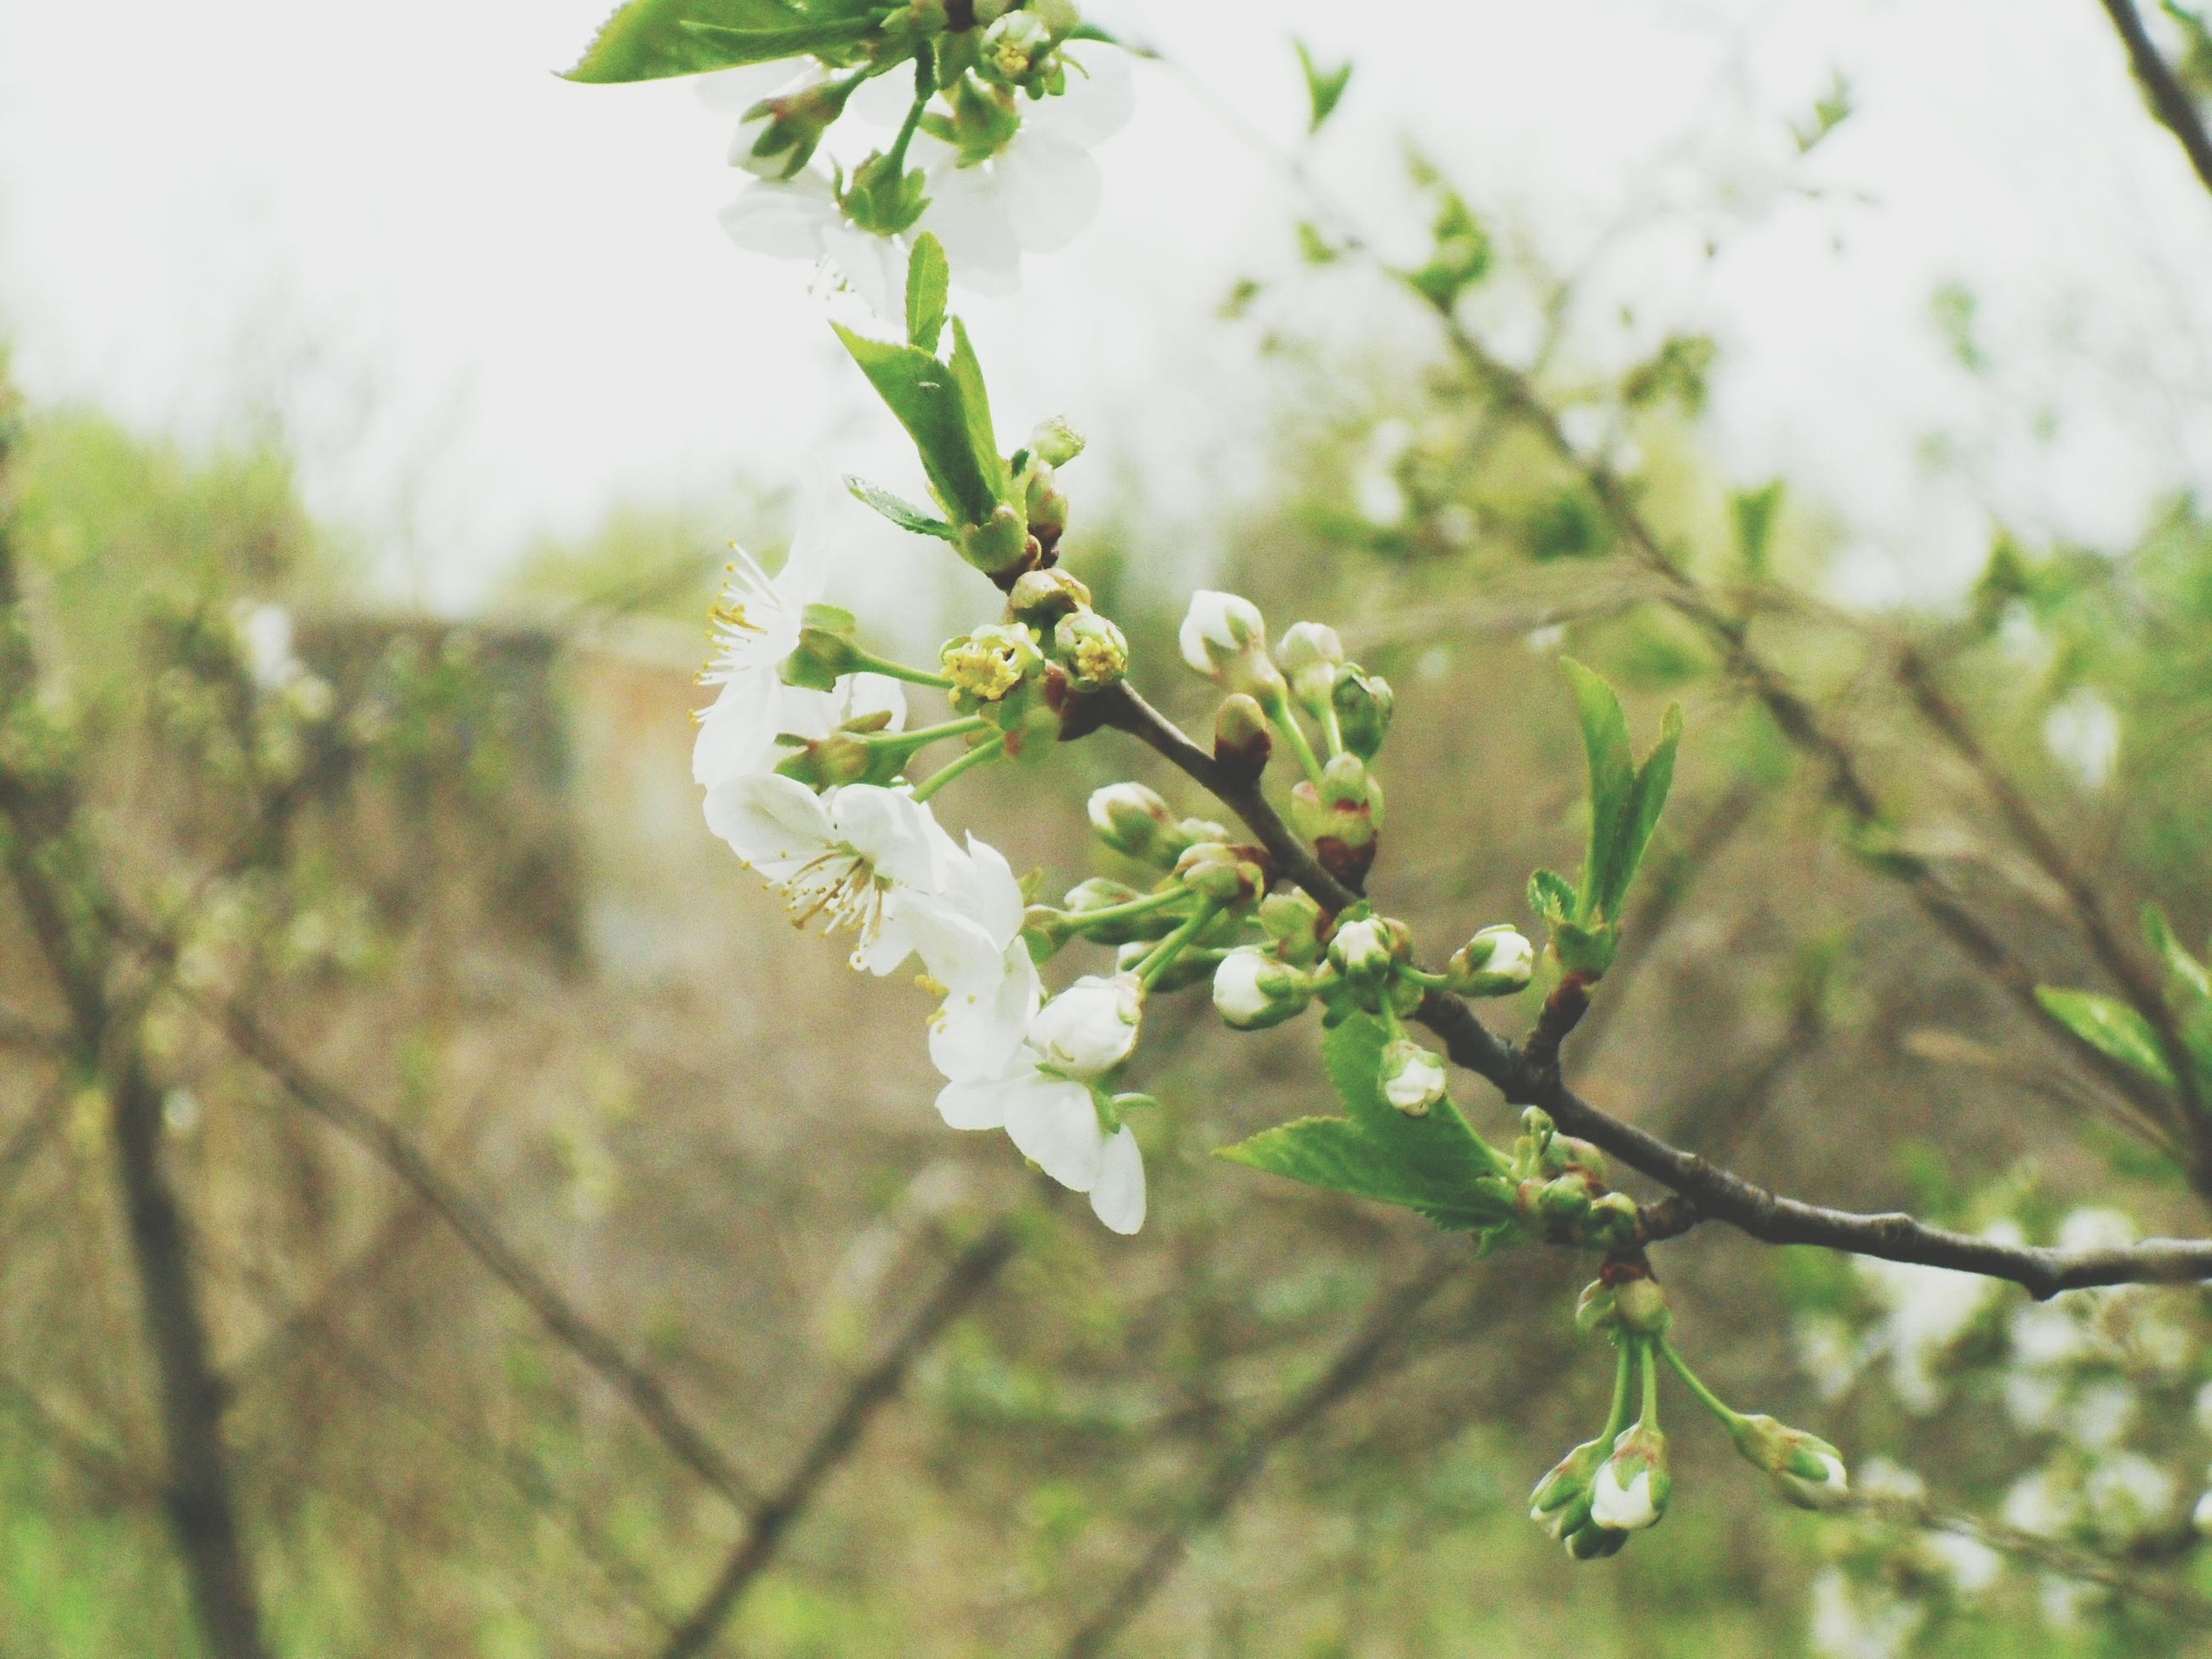 growth, flower, freshness, white color, leaf, focus on foreground, close-up, nature, fragility, beauty in nature, branch, plant, tree, green color, bud, blossom, twig, petal, stem, selective focus